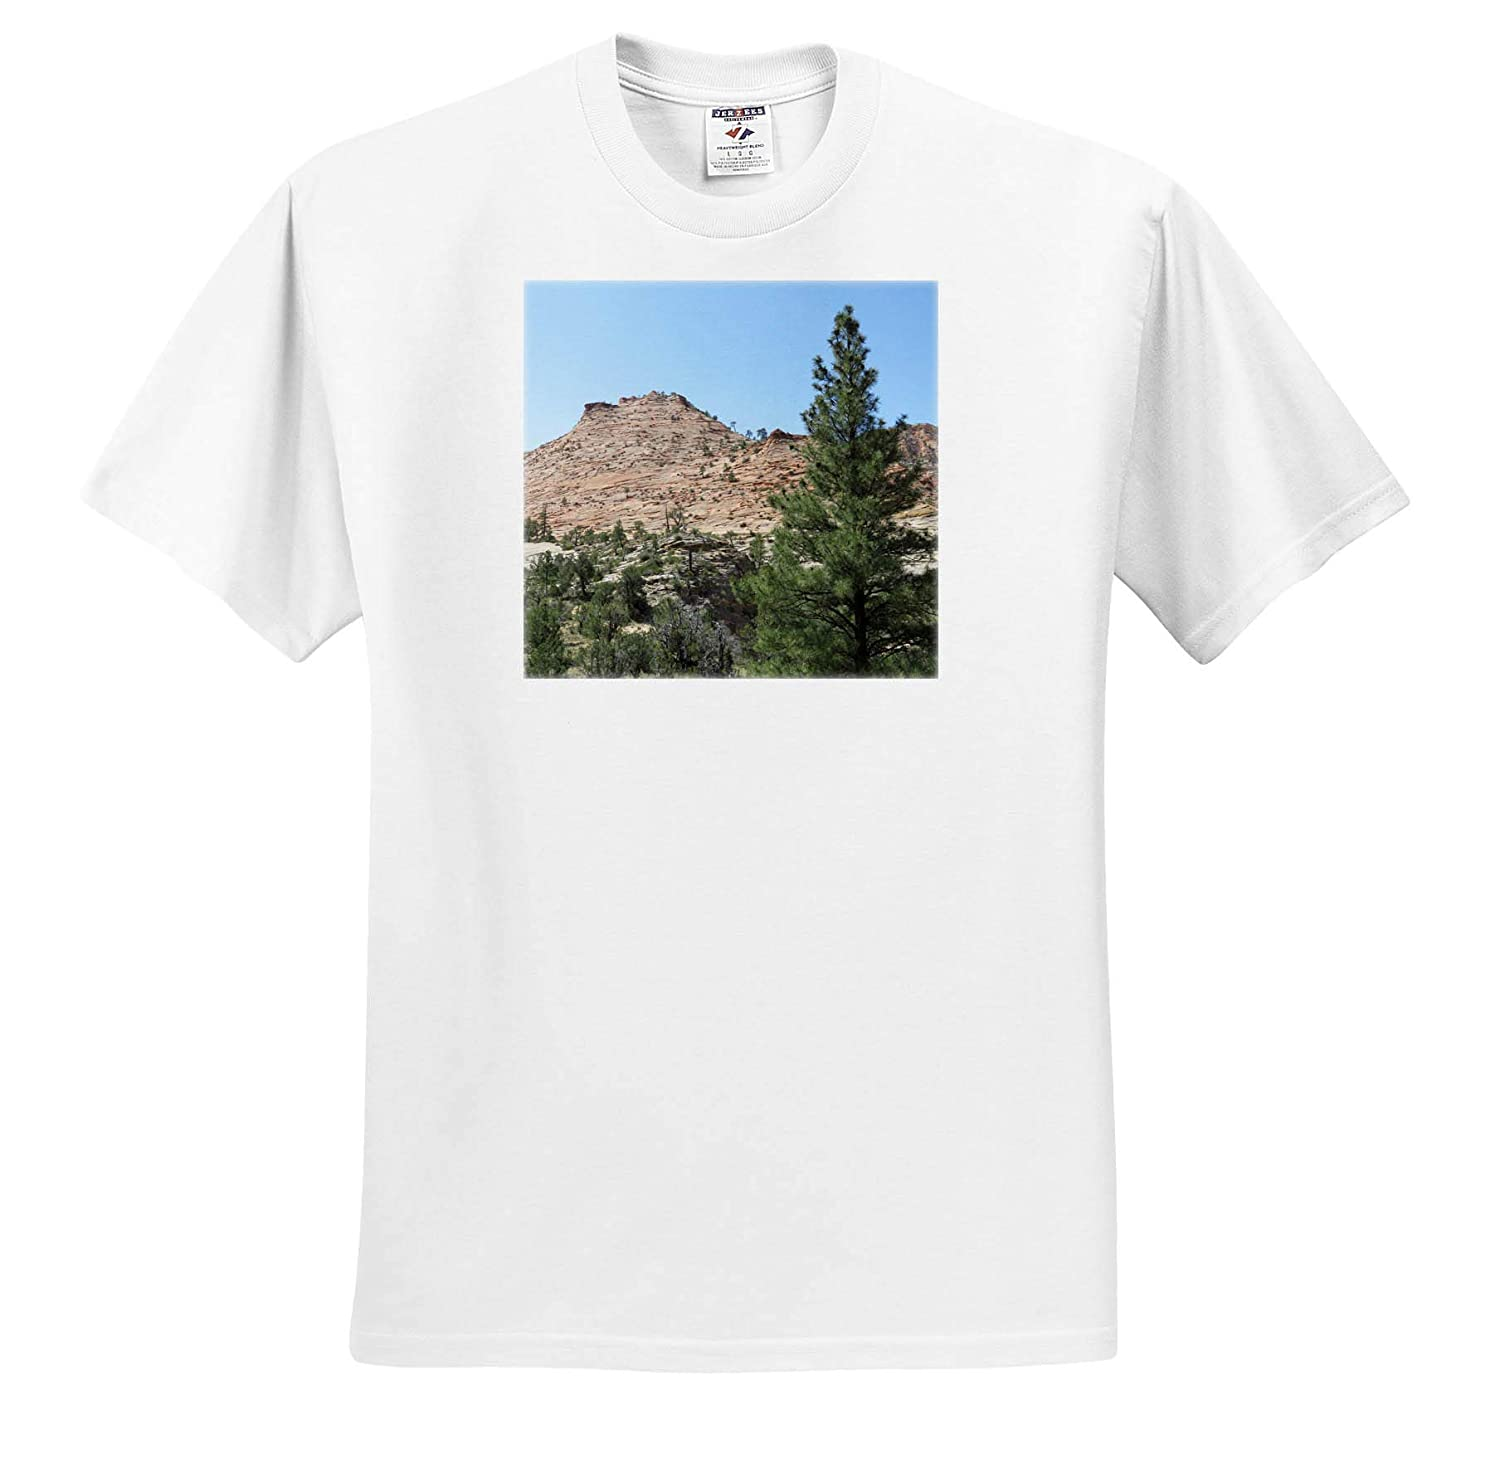 Other Side of Zion The Mountains and Trees on The Way Out of Zion and onto Orderville 3dRose Jos Fauxtographee T-Shirts